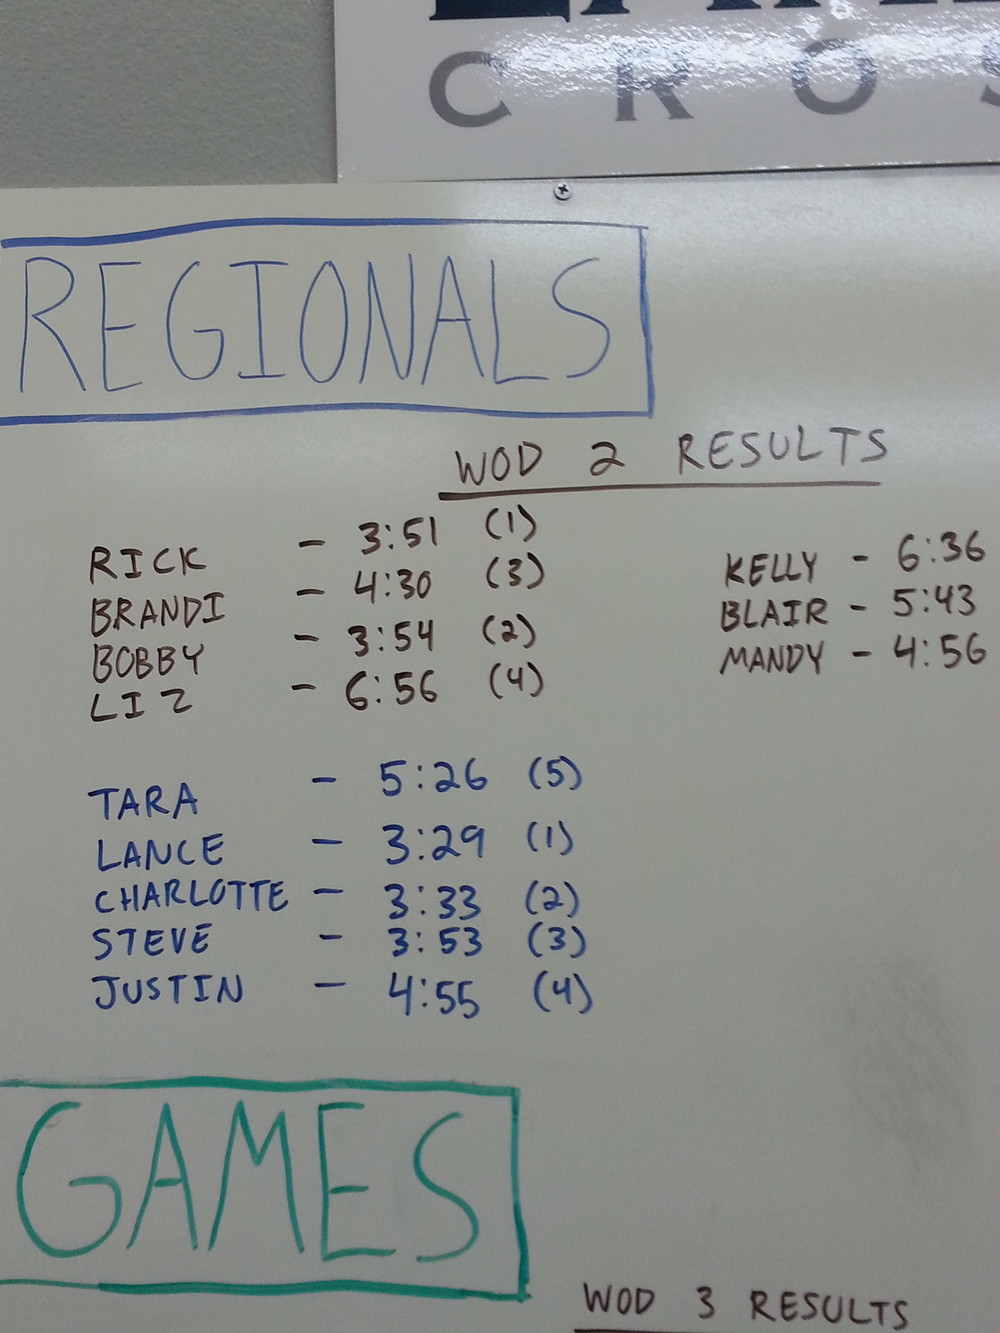 WOD 2 Results